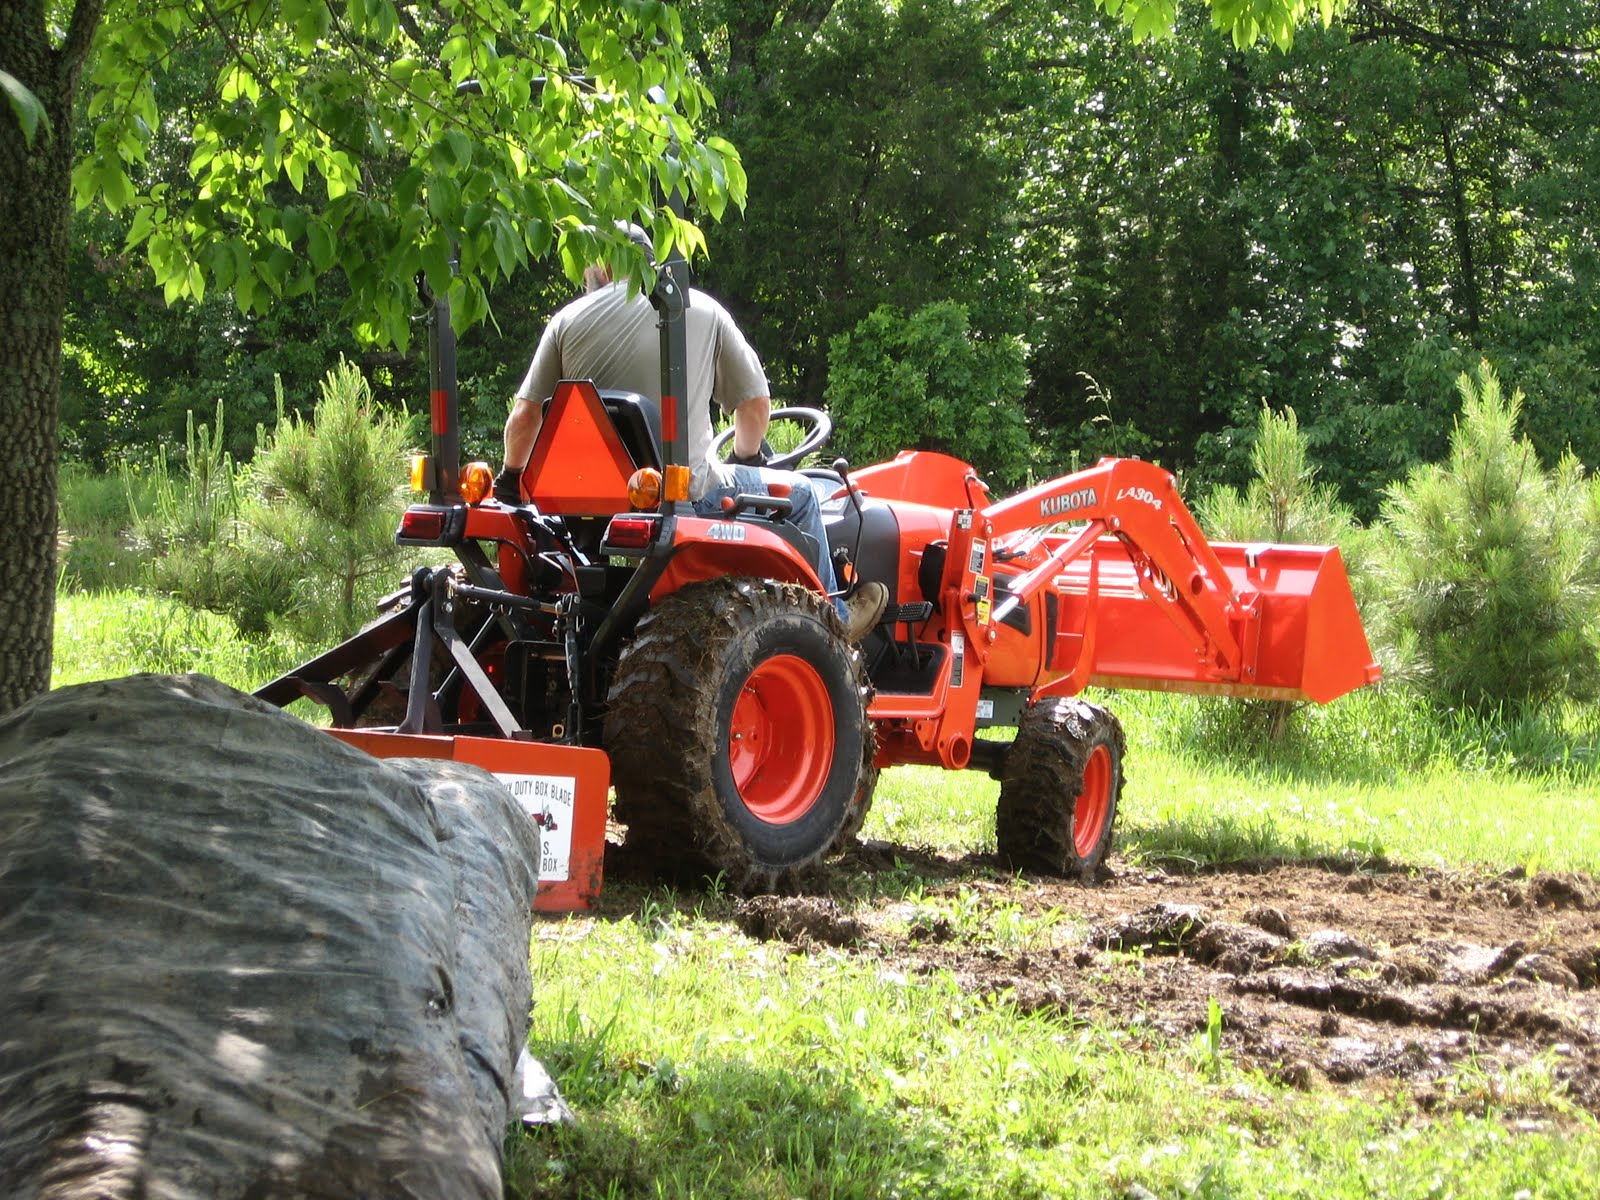 Simple Life: The Tractors